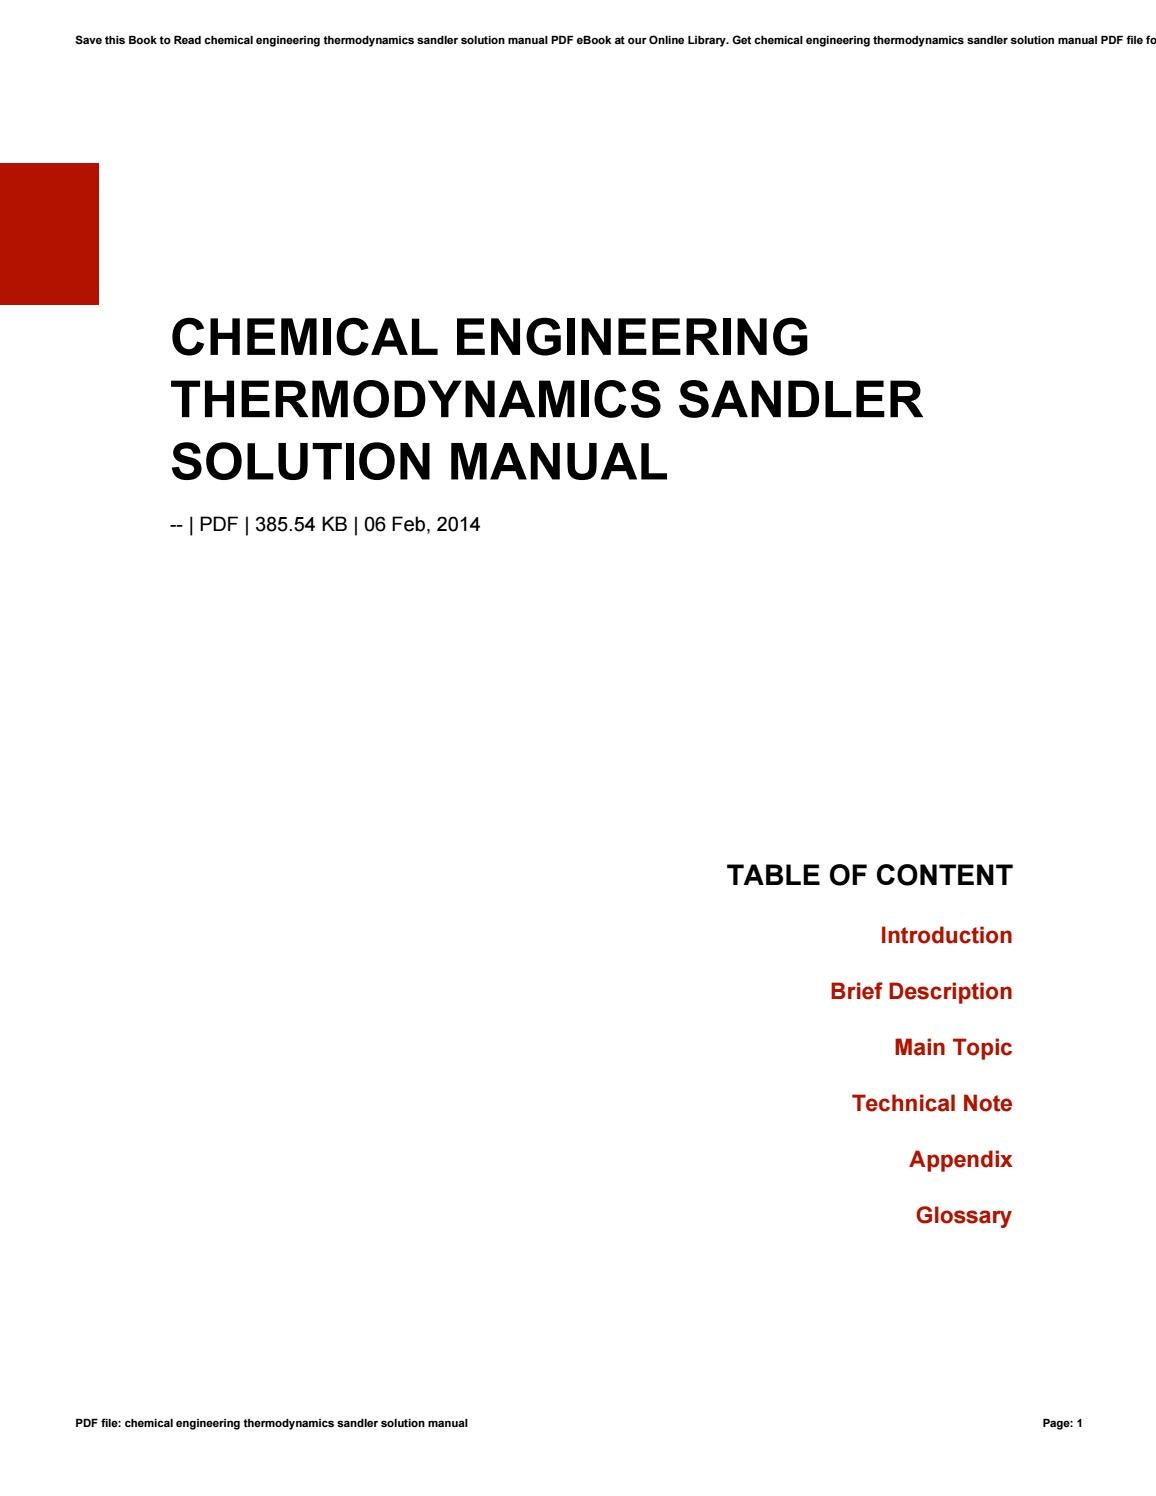 Chemical engineering thermodynamics sandler solution manual by rblx7 - issuu